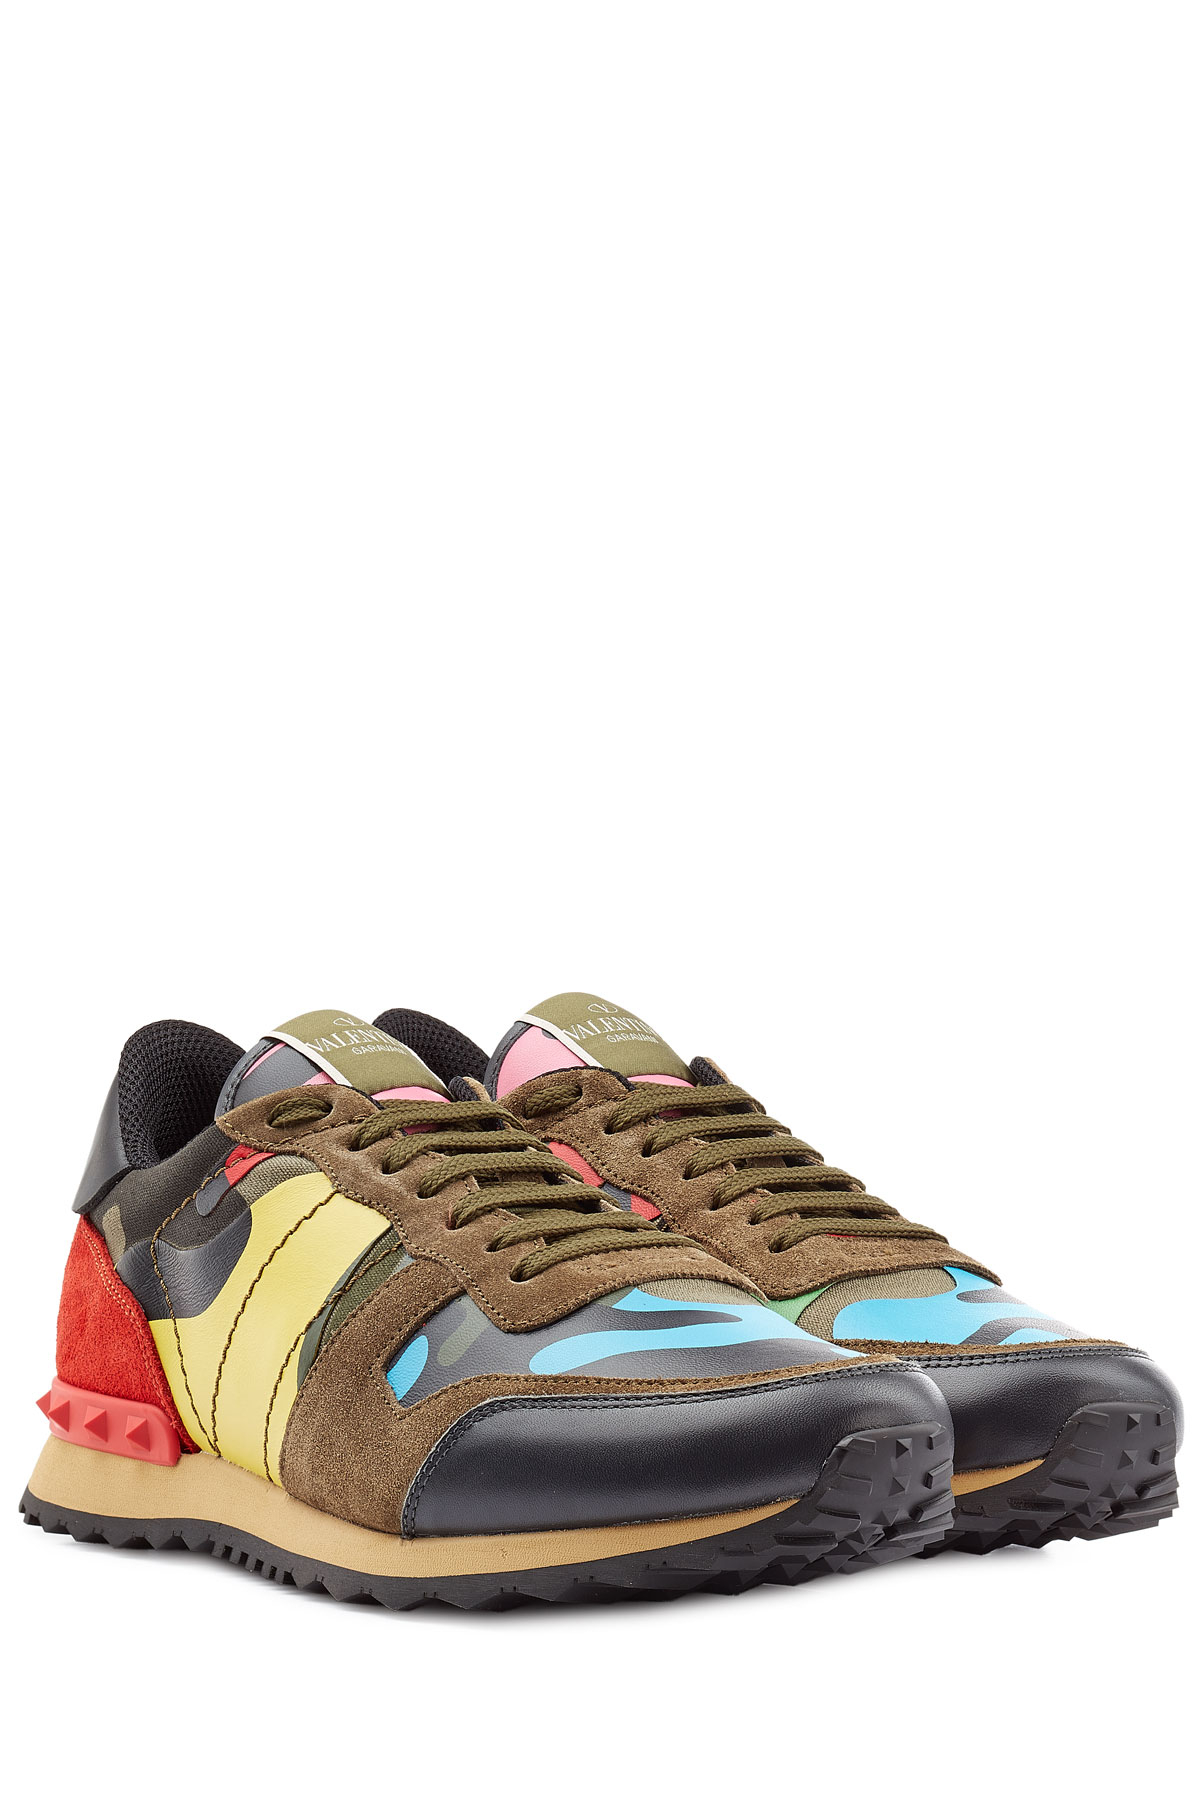 valentino camouflage sneakers in green for men lyst. Black Bedroom Furniture Sets. Home Design Ideas